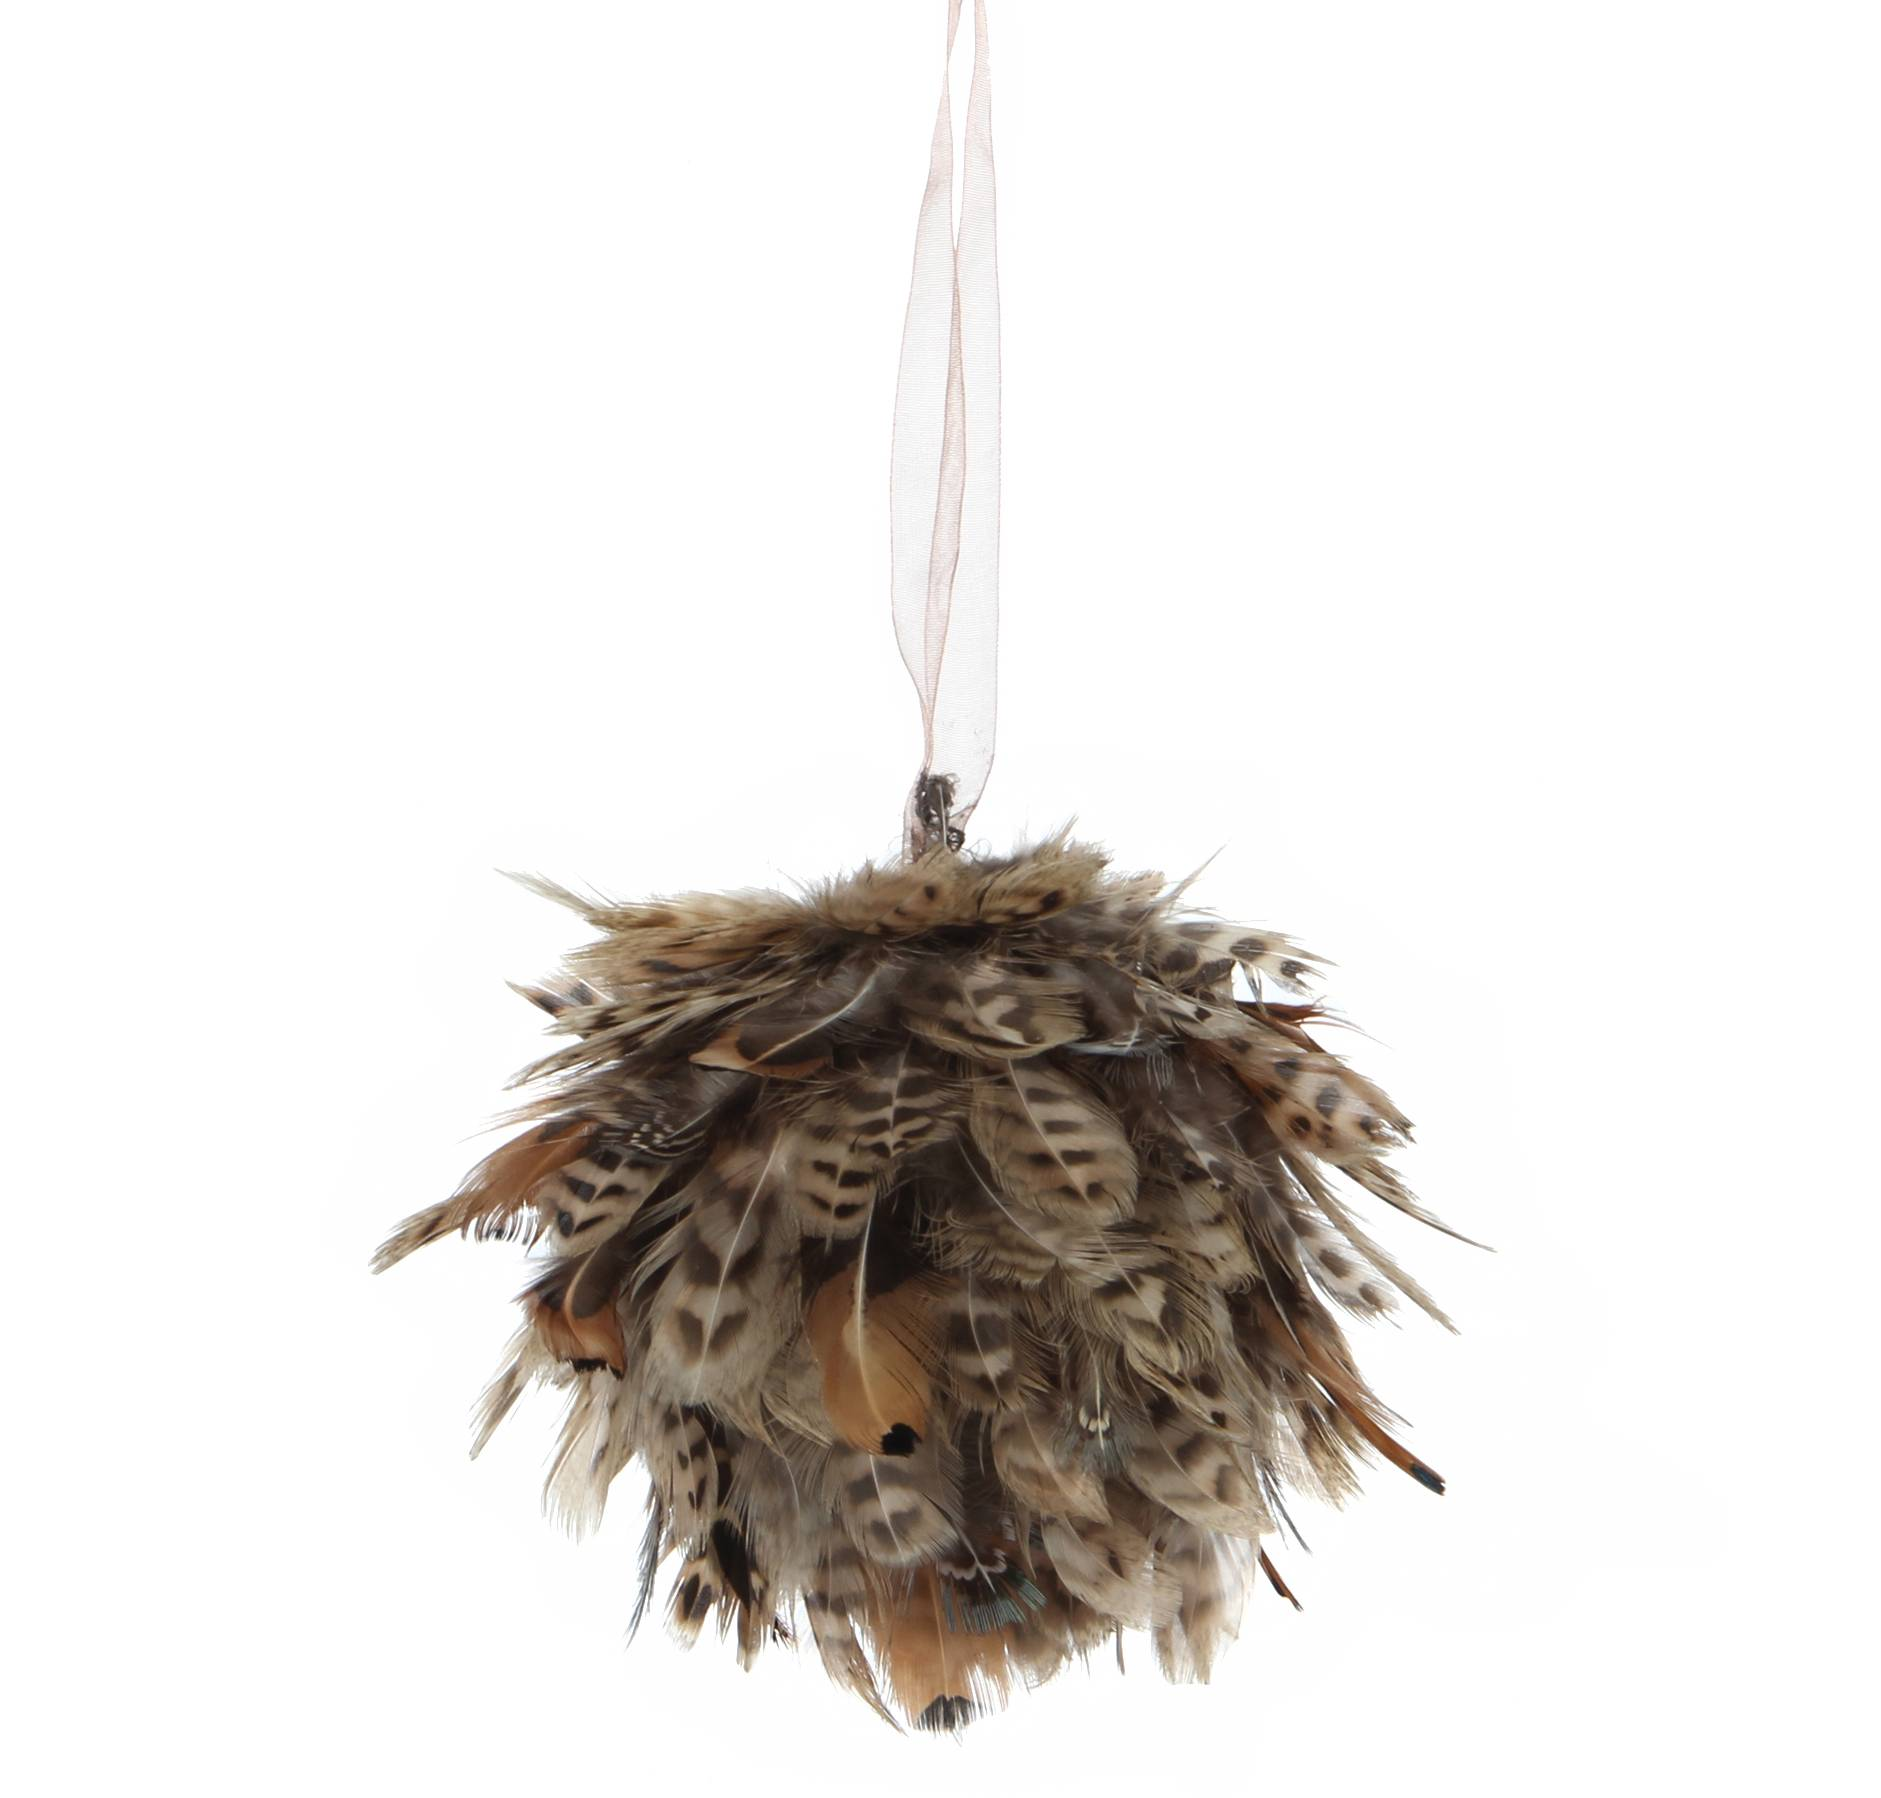 Boule De Plumes Decorative A Accrocher Ou Suspendre Sur Poignet Ou Meuble Decoration De Noel 12cm L Heritier Du Temps